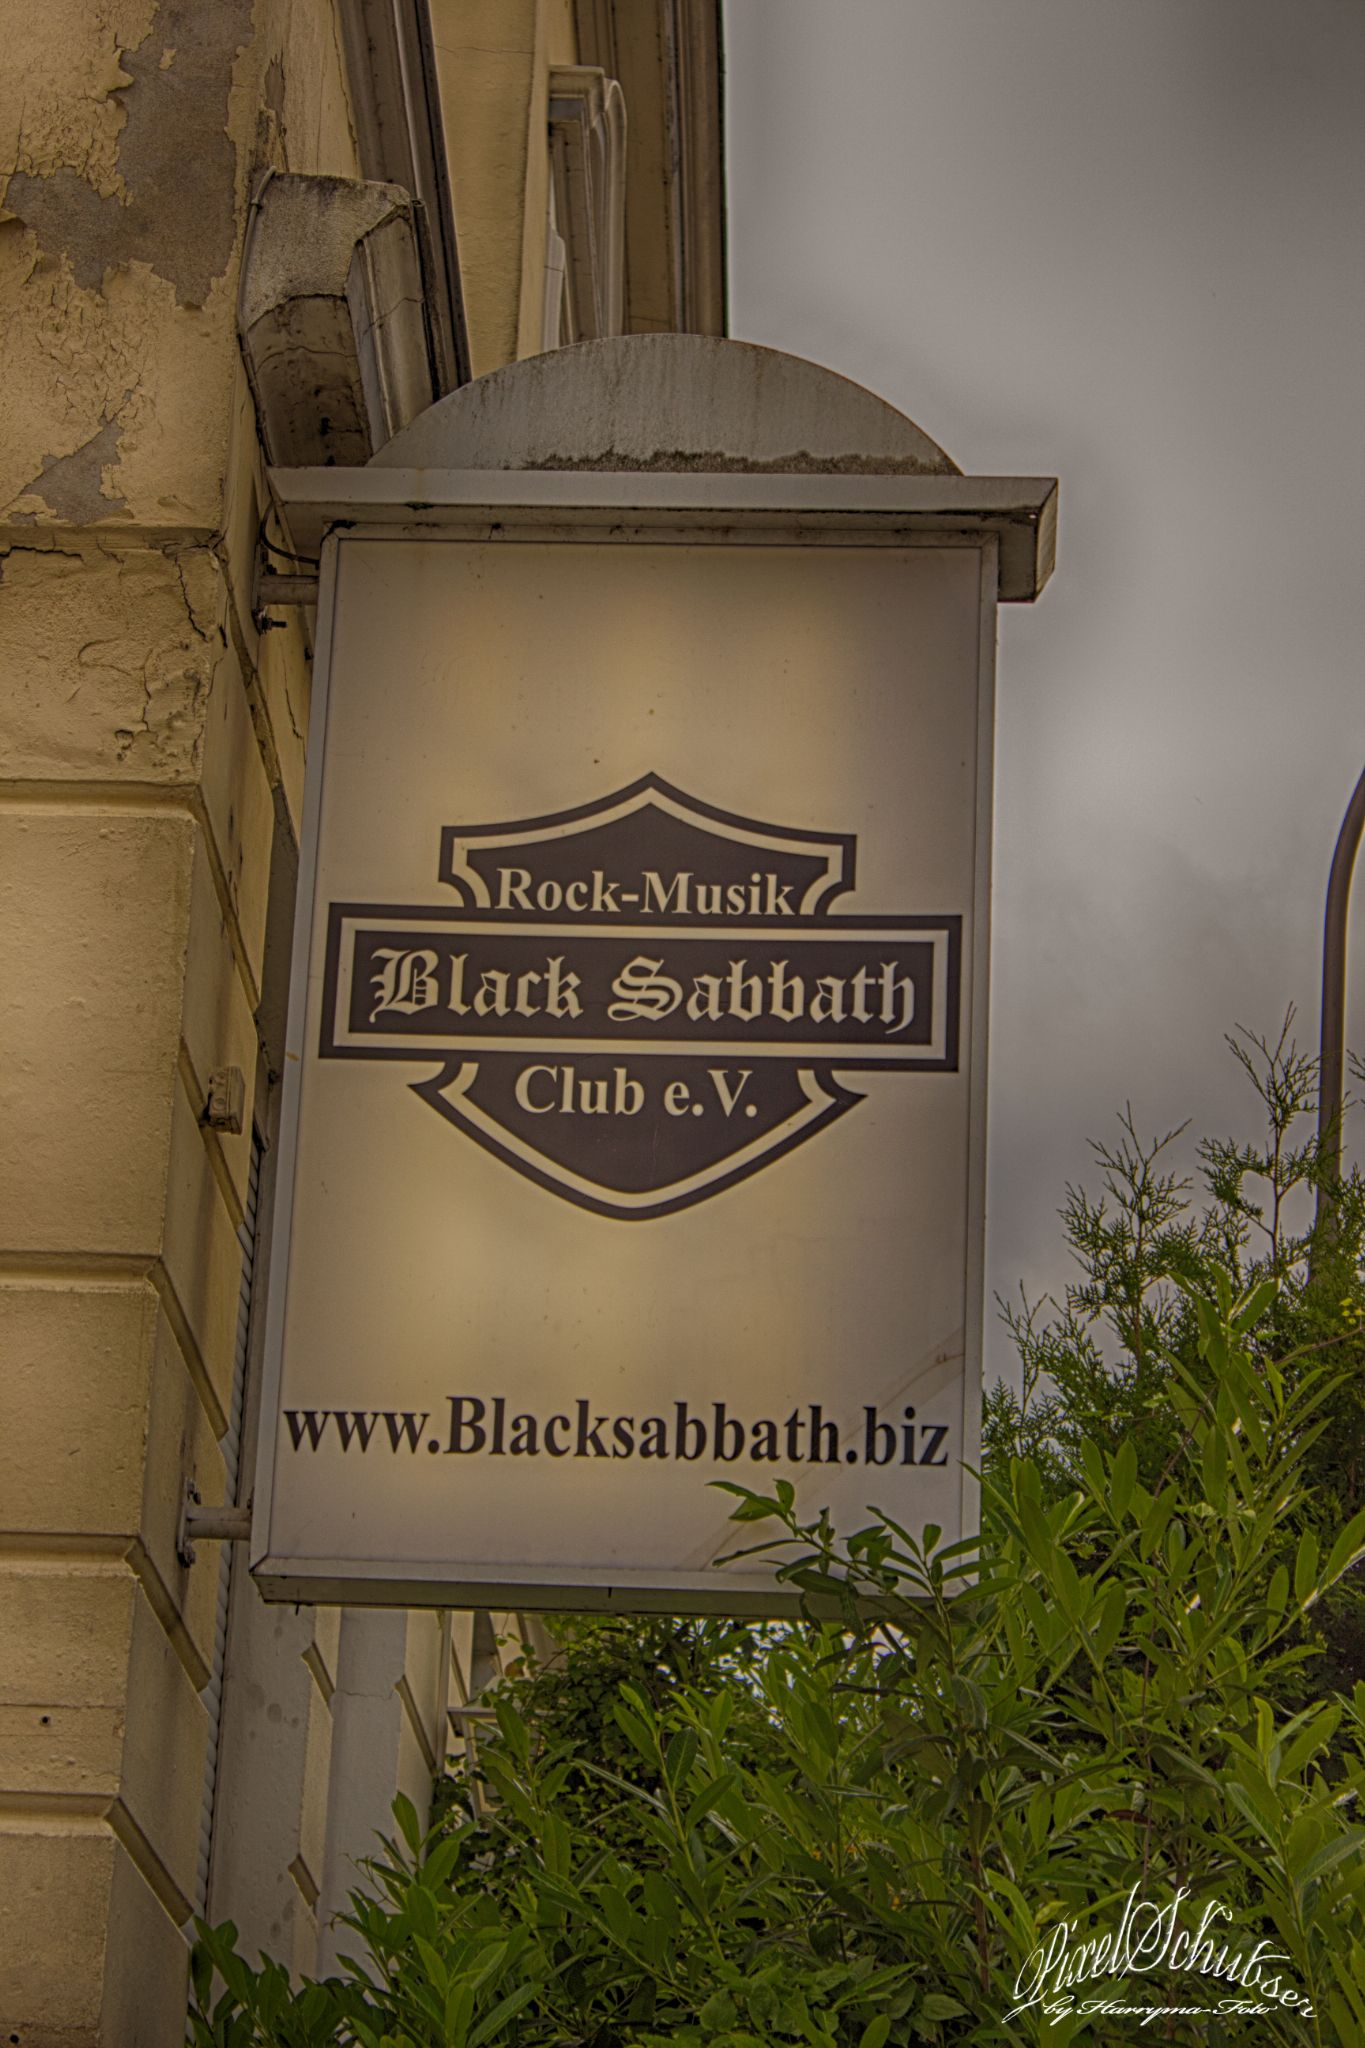 Black-Sabbath by haraldkleiner